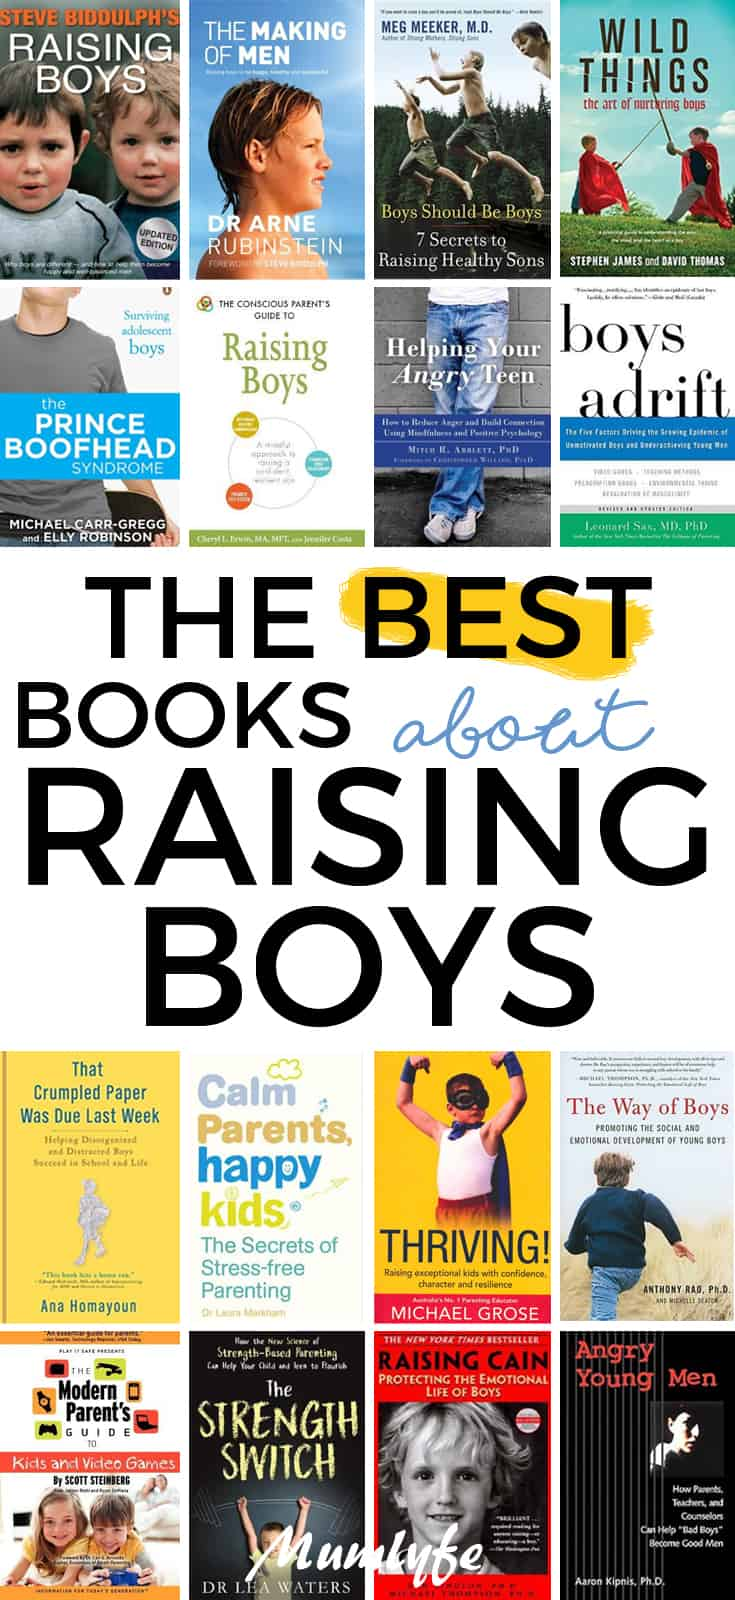 Very helpful books about raising books - the parenting books that really help